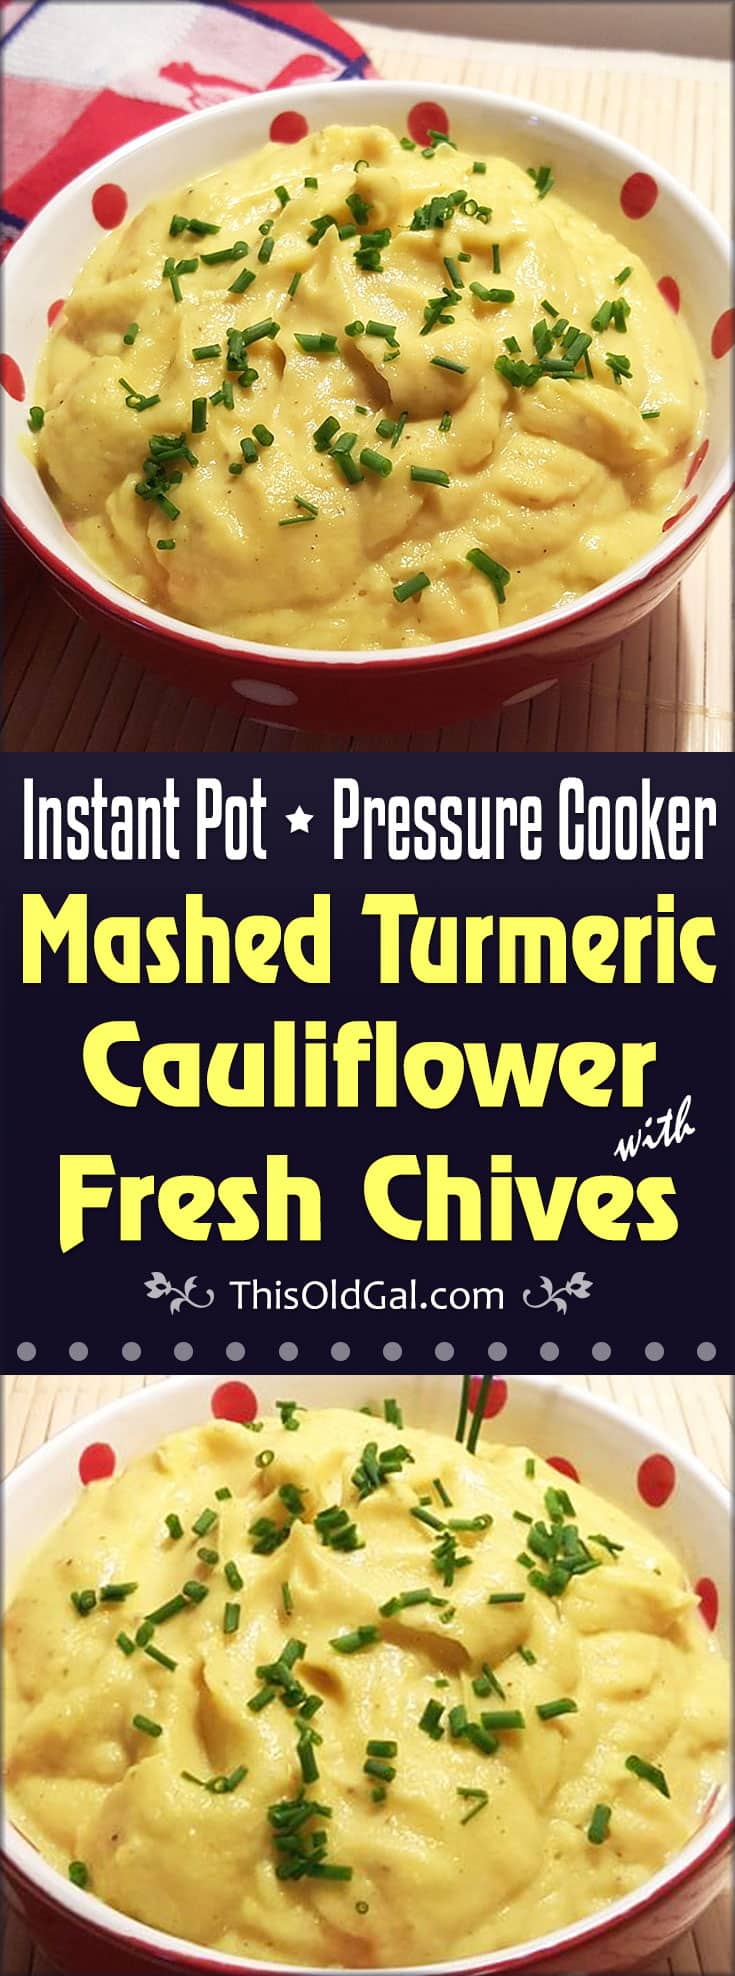 Pressure Cooker Mashed Turmeric Cauliflower with Fresh Chives